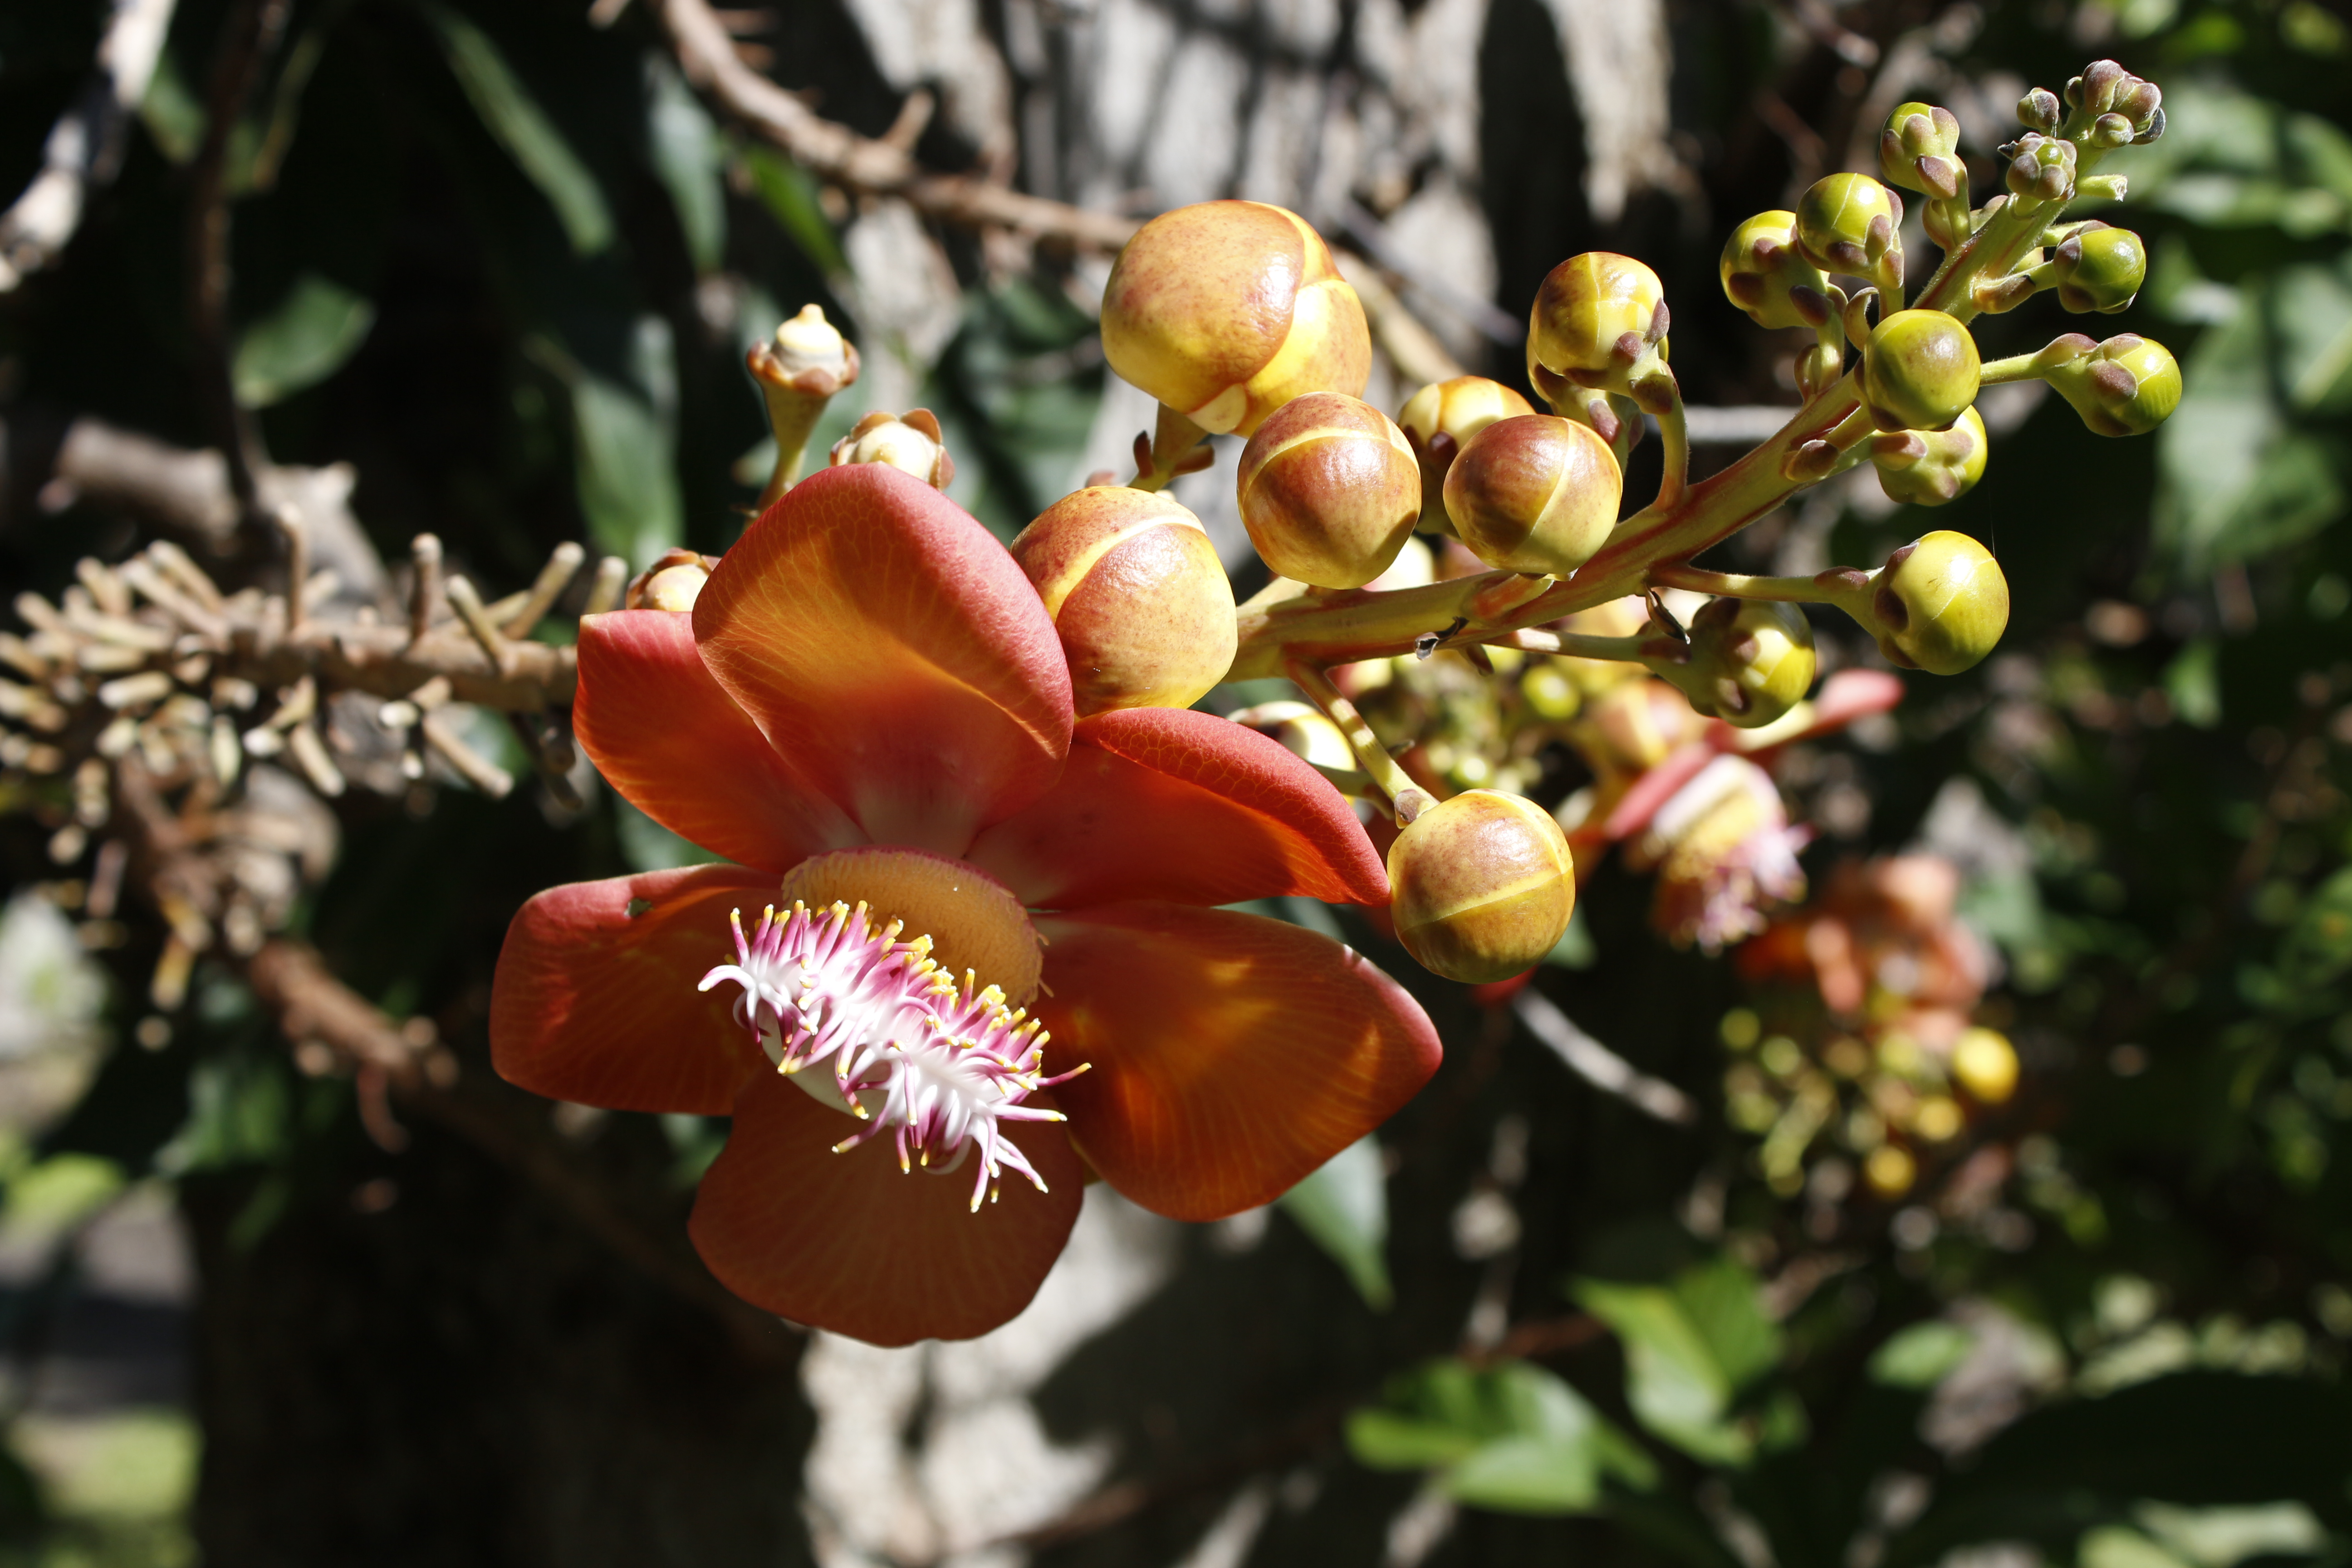 Flower of the Cannonball tree, Couroupita guianensis